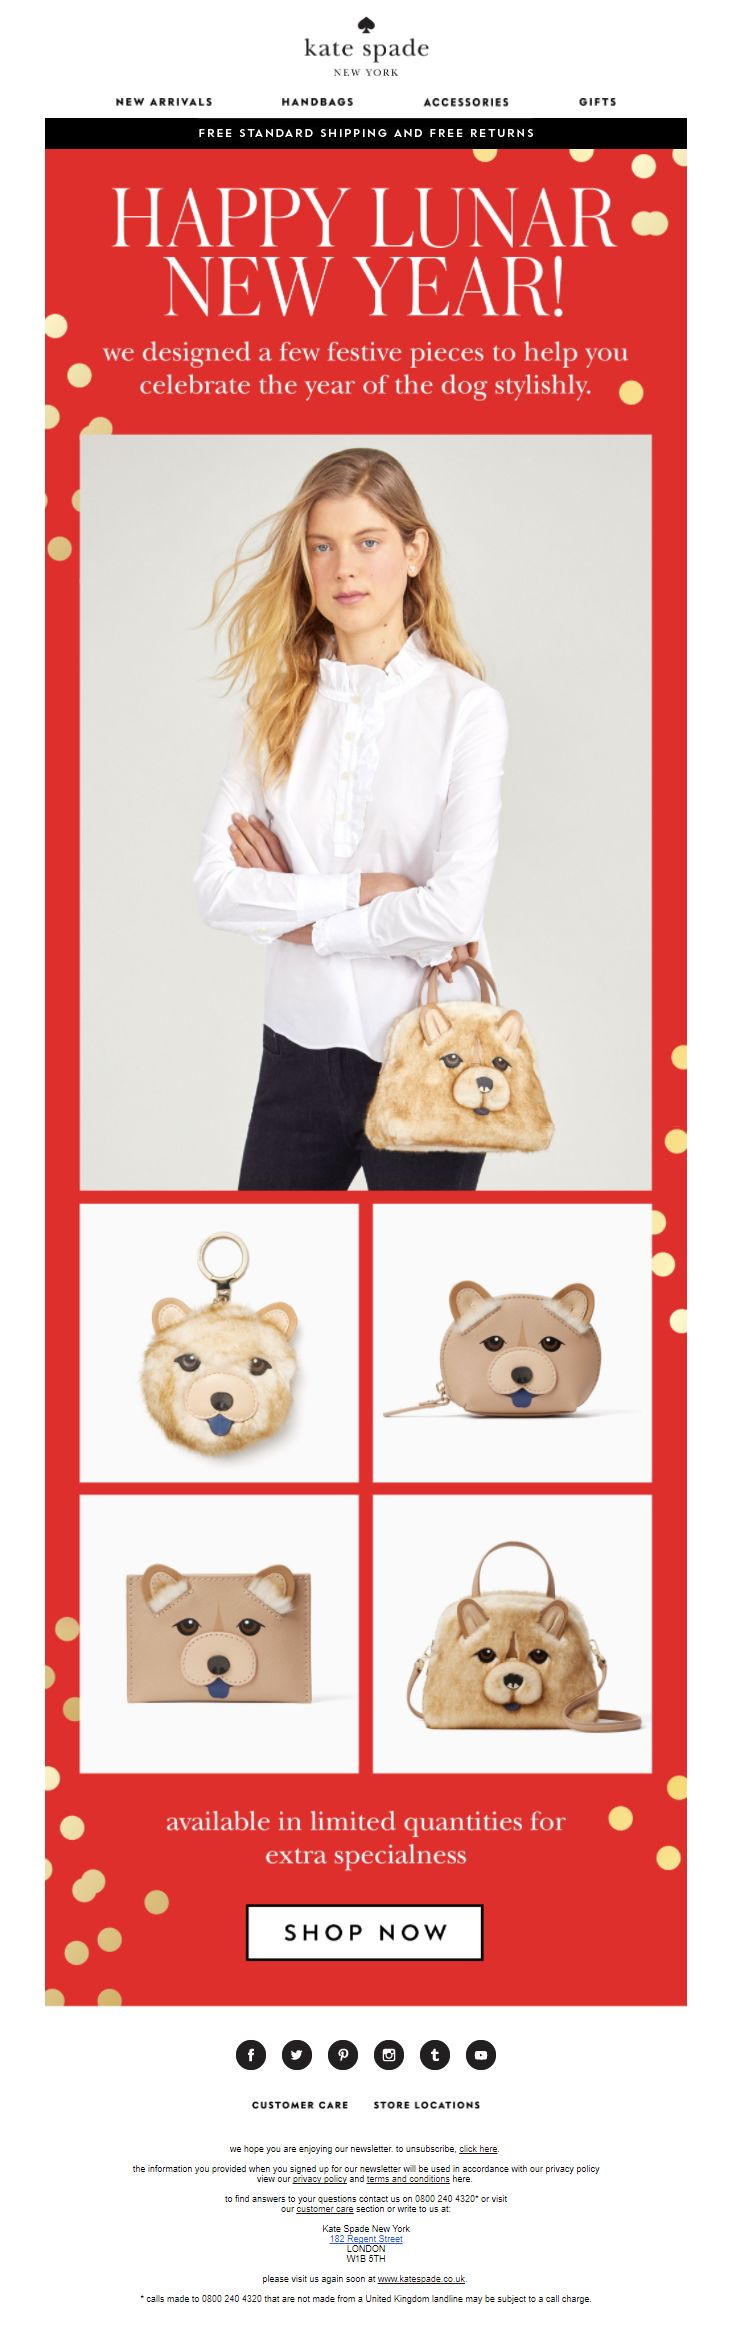 Lunar New Year Email from Kate Spade #EmailMarketing #Email #Marketing #Chinese #Lunar #New #Year #Dog #YearOfTheDog #Product #Recommendations #Fashion